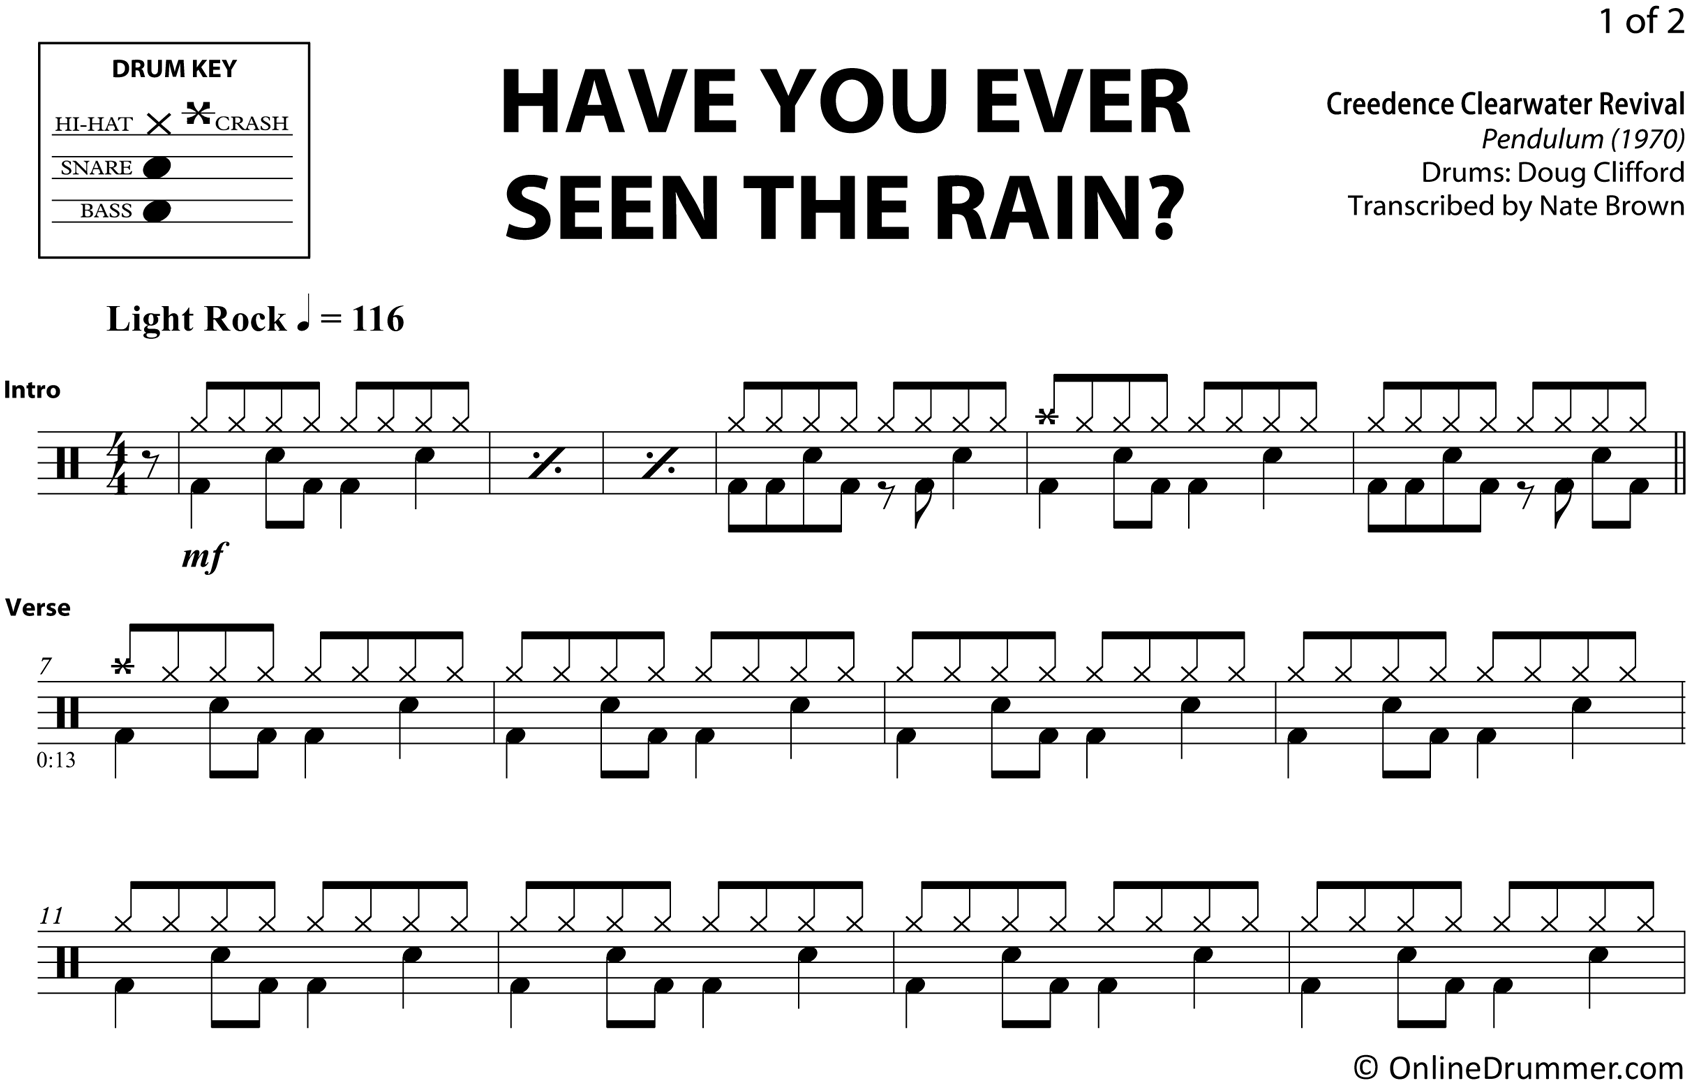 Have You Ever Seen The Rain - Creedence Clearwater Revival - Drum Sheet Music